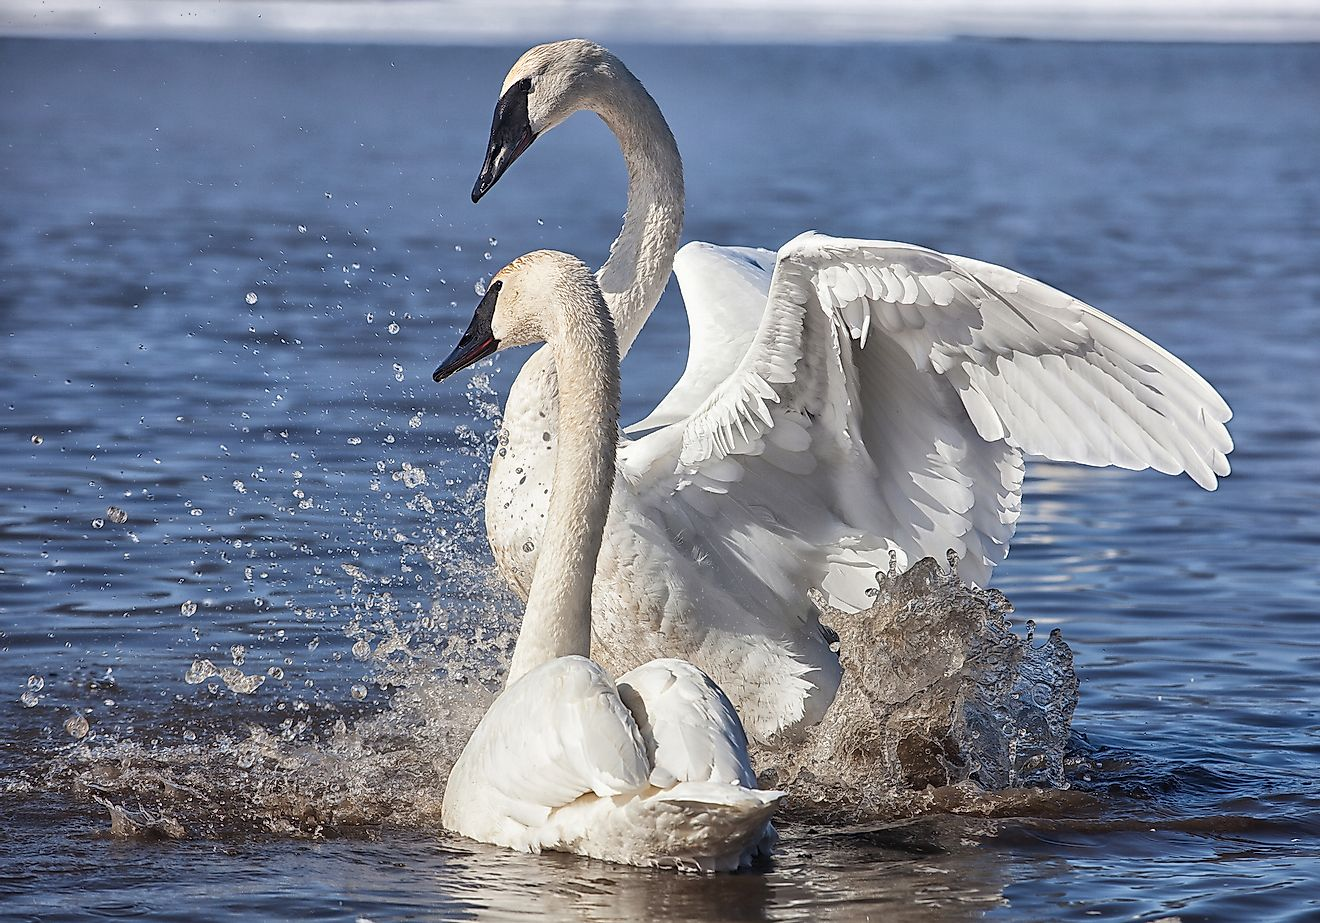 Trumpeter swans exhibiting courtship behavior.